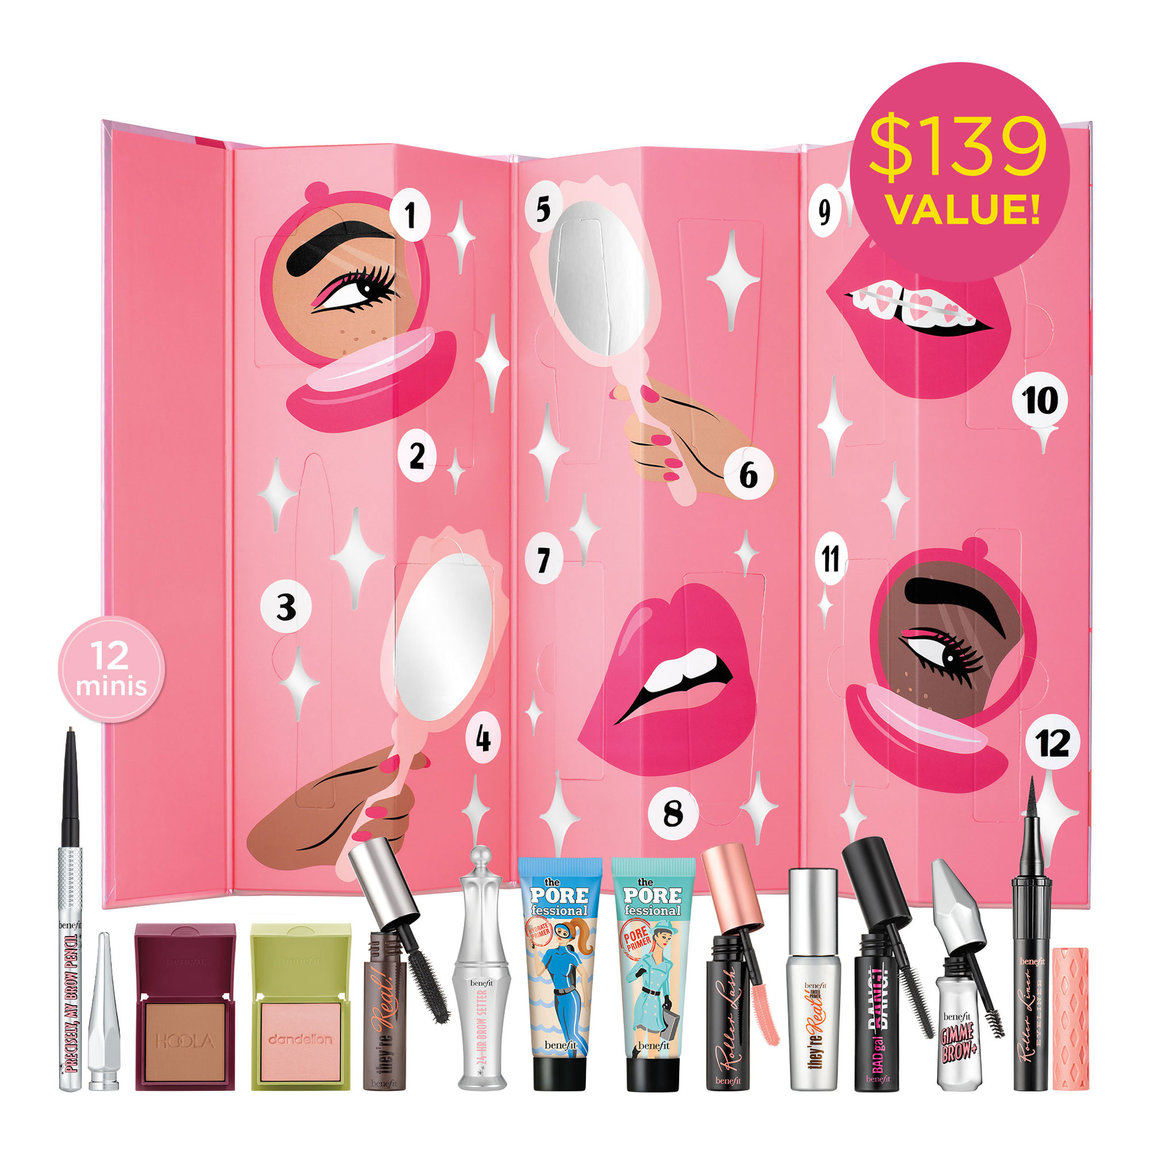 Benefit Cosmetics Shake Your Beauty Advent Calendar alternative view 1 - product swatch.